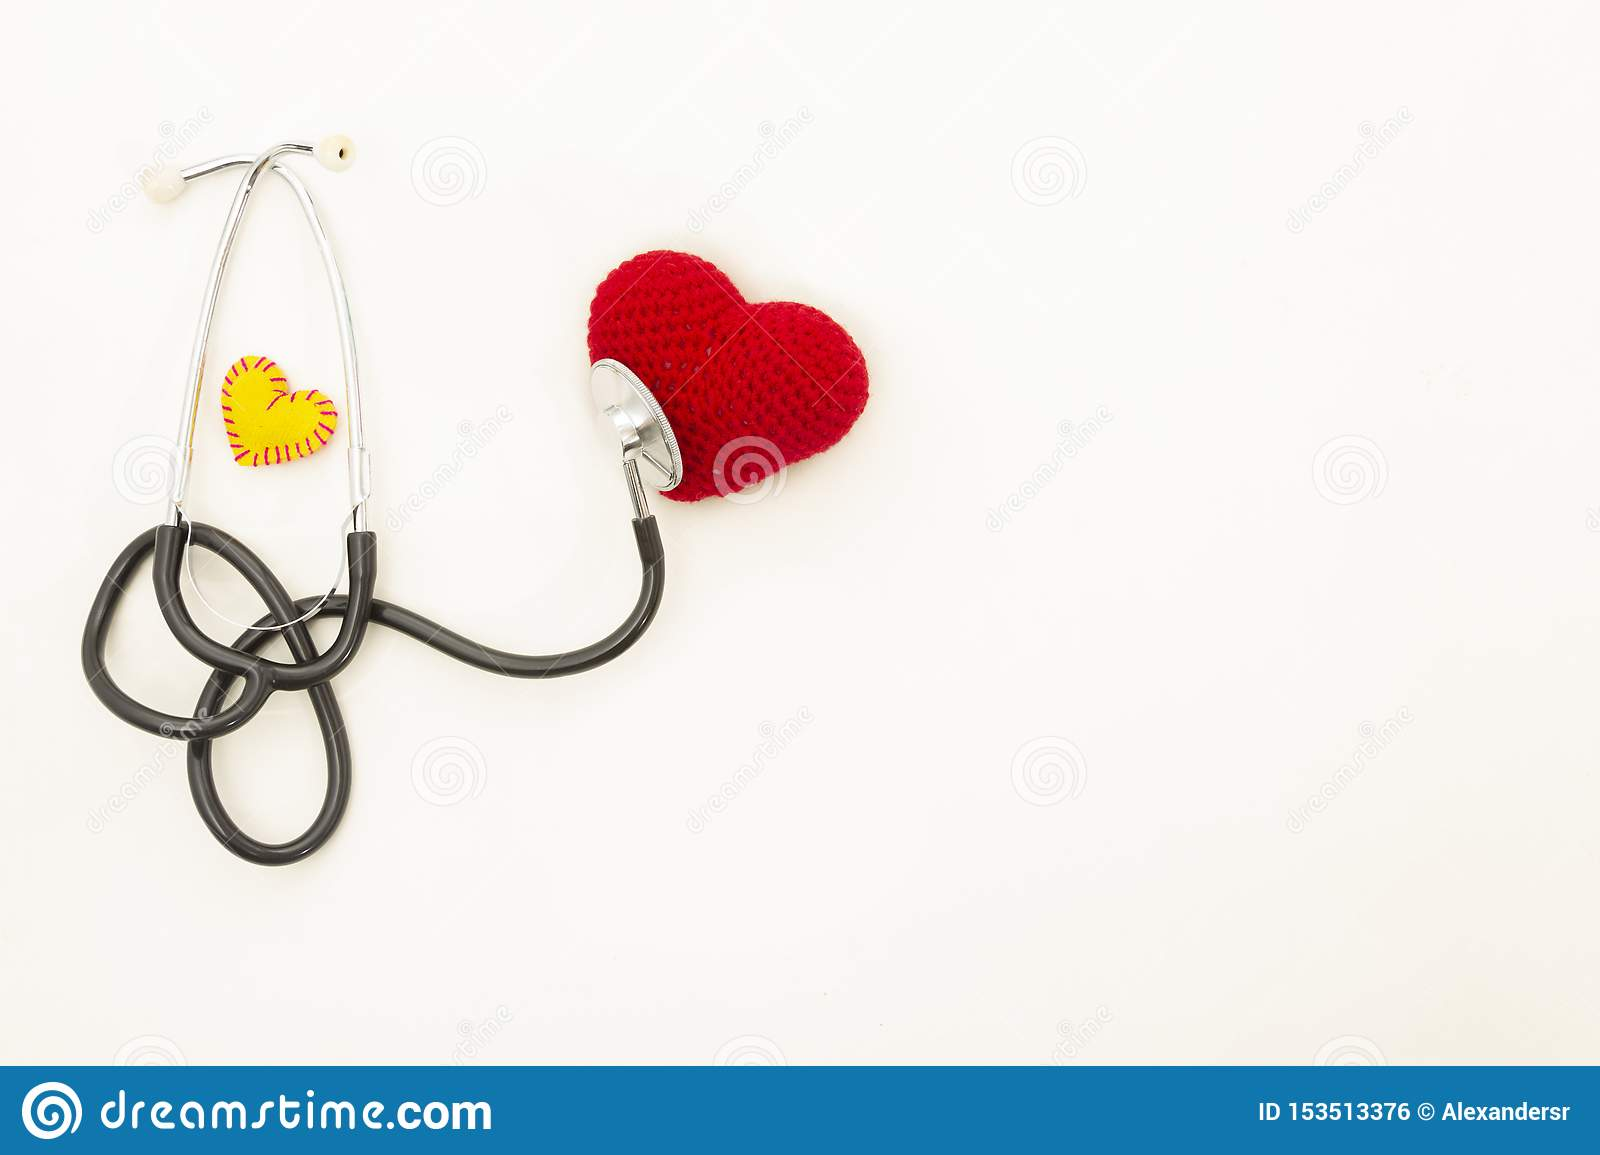 Heart health and prevention concept. Stethoscope and red heart of crochet on white isolated background with space for text